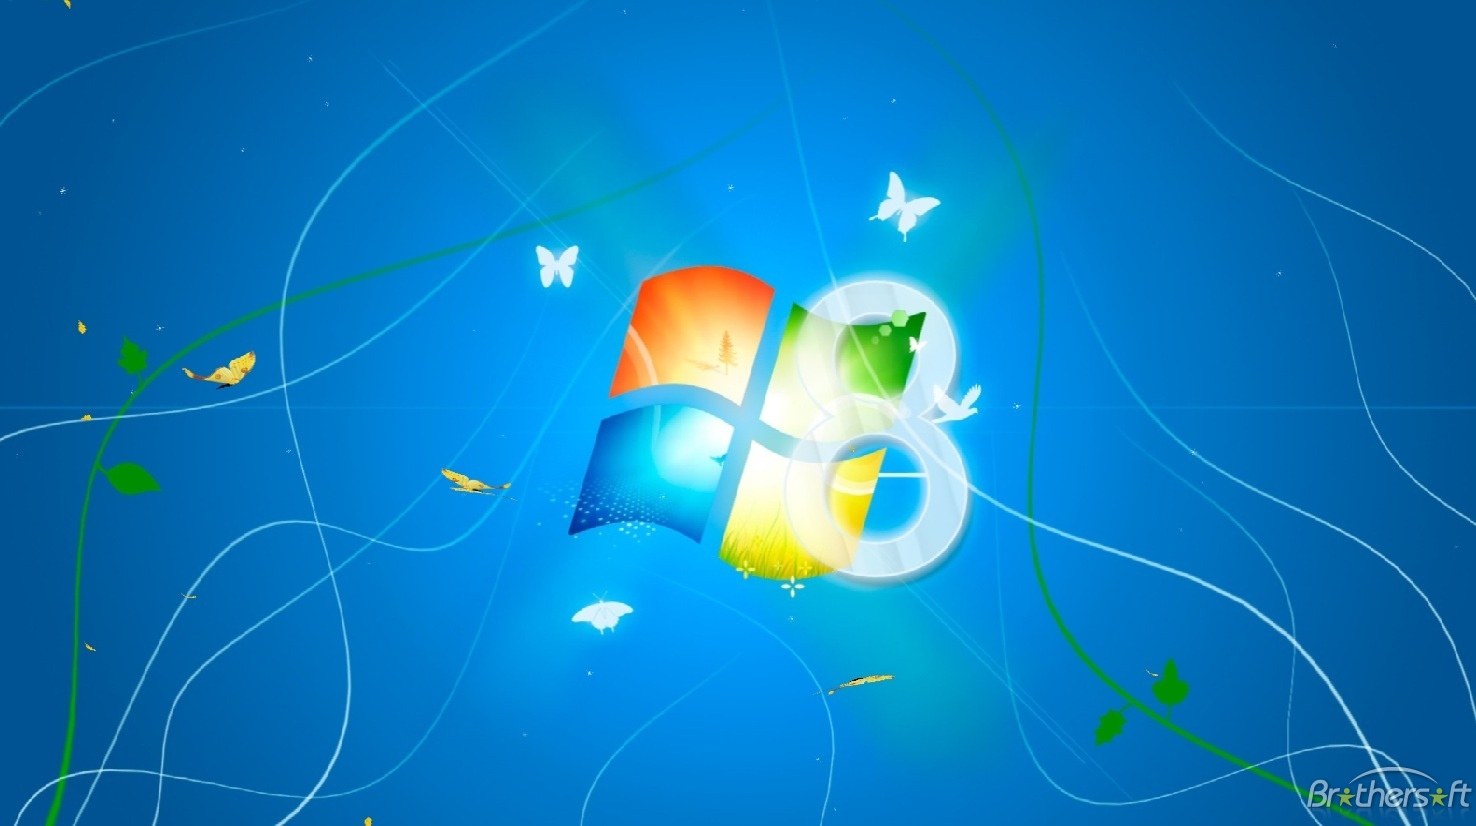 Windows 8 Light Animated Wallpaper Windows 8 Light Animated 1476x826